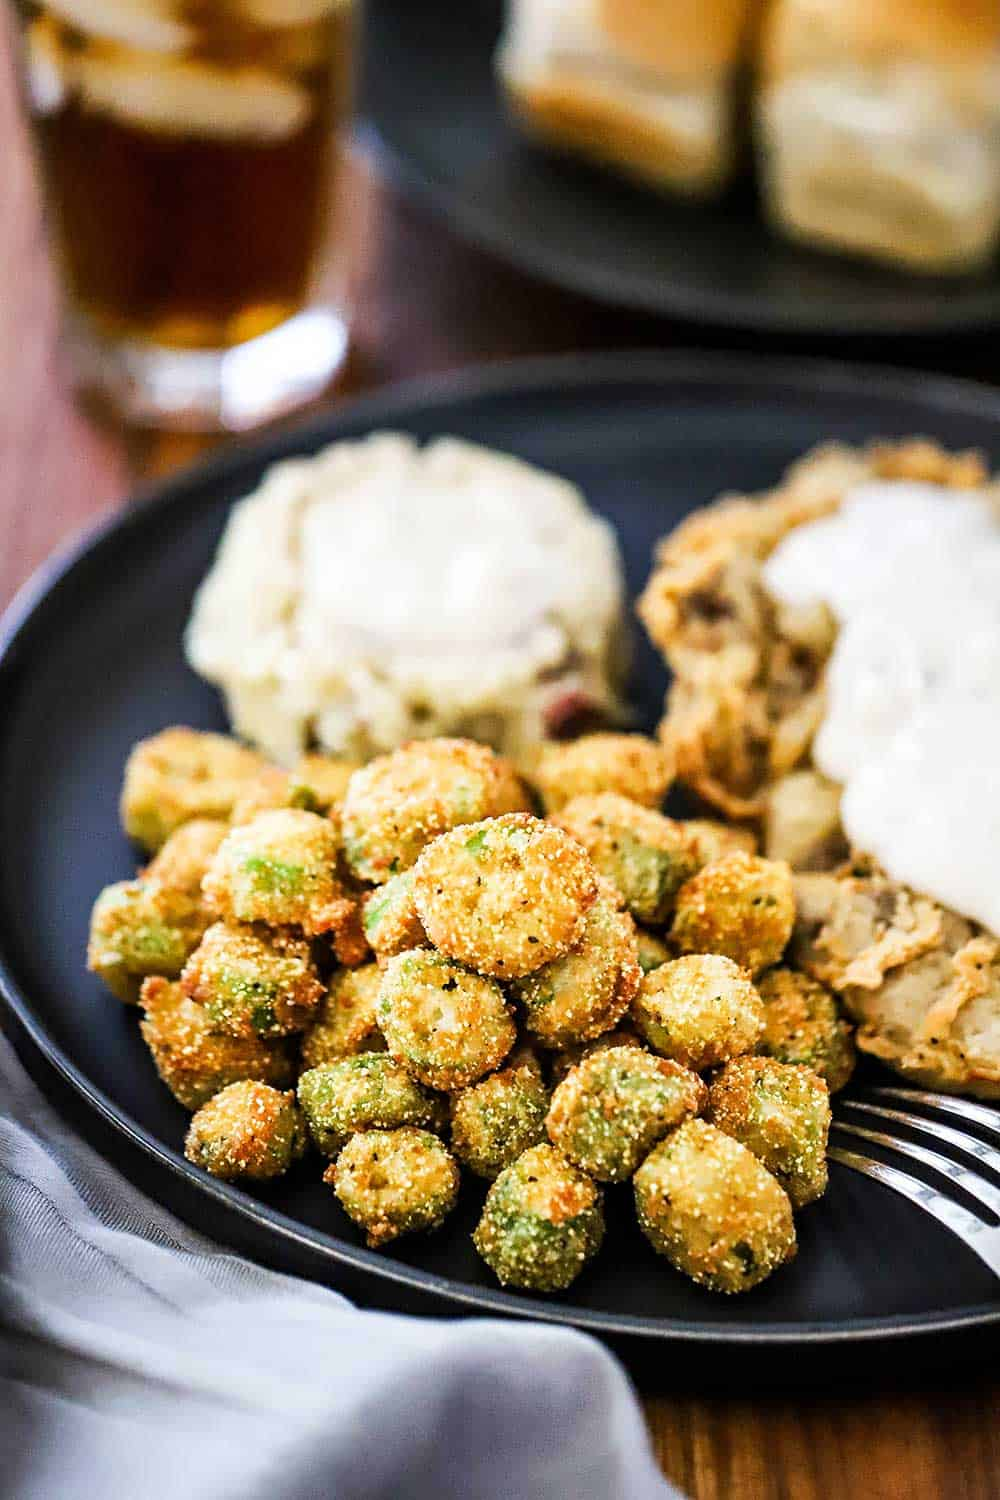 A blue dinner plate willed with chicken fried steak, mashed potatoes, both topped with gravy, all next to a pile of fried okra.